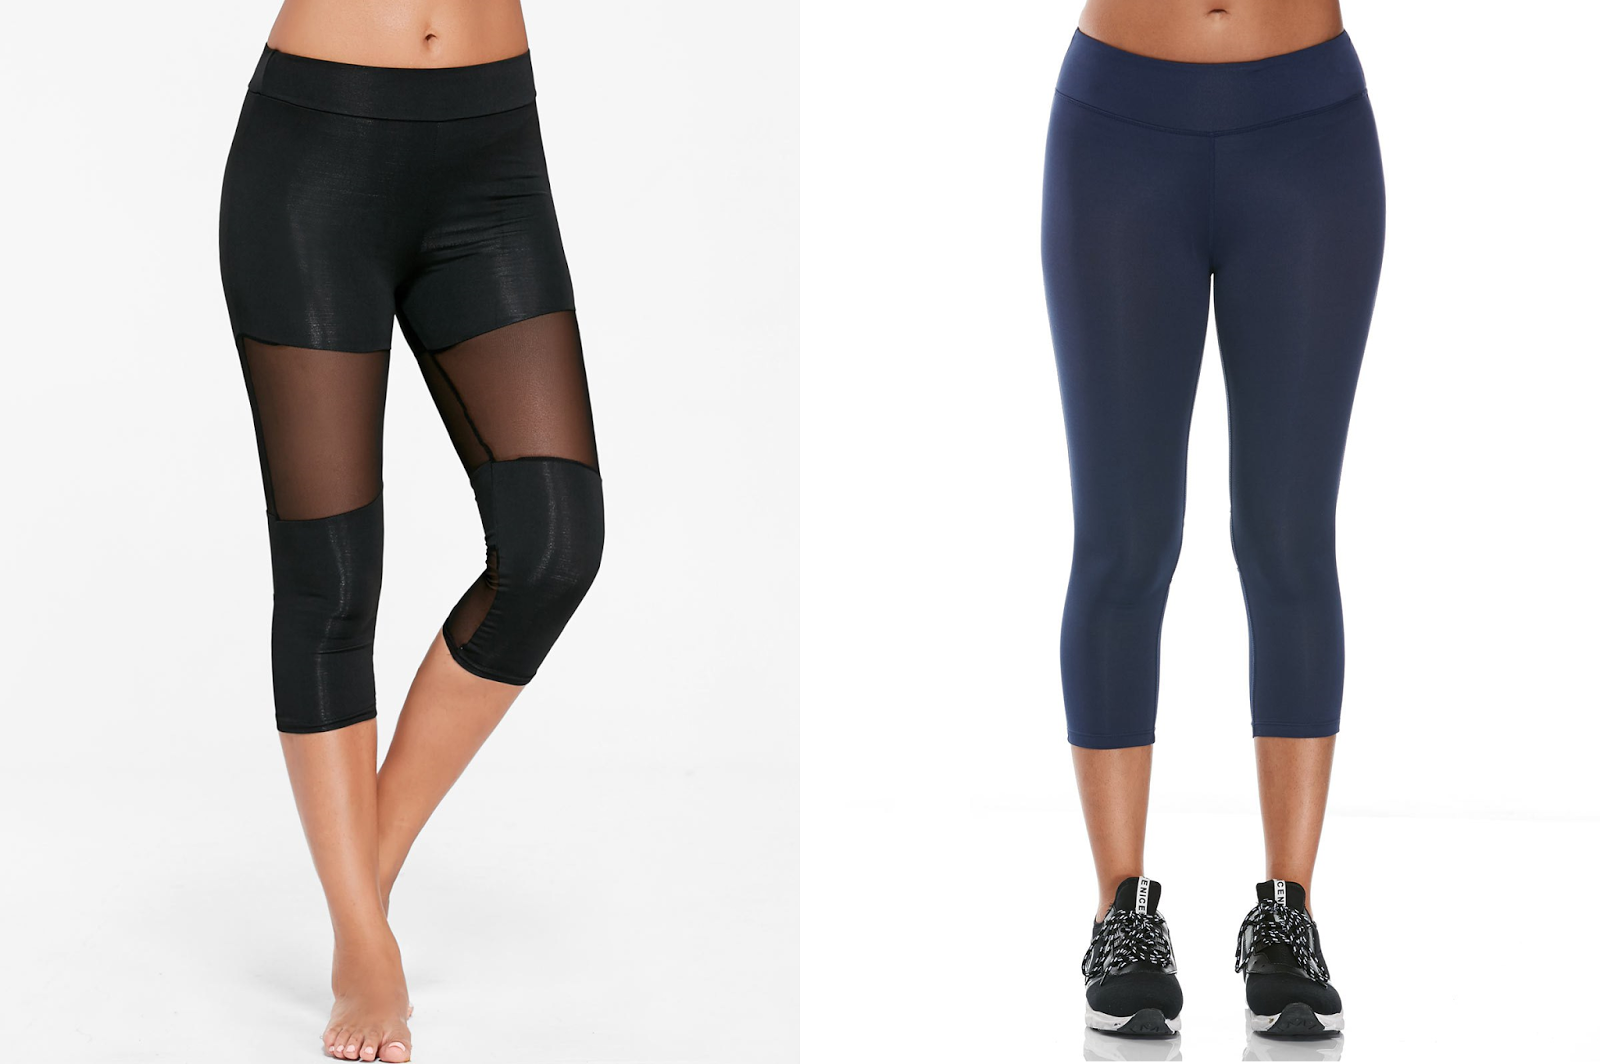 Best sheer leggings for sale in DRESSLILY.